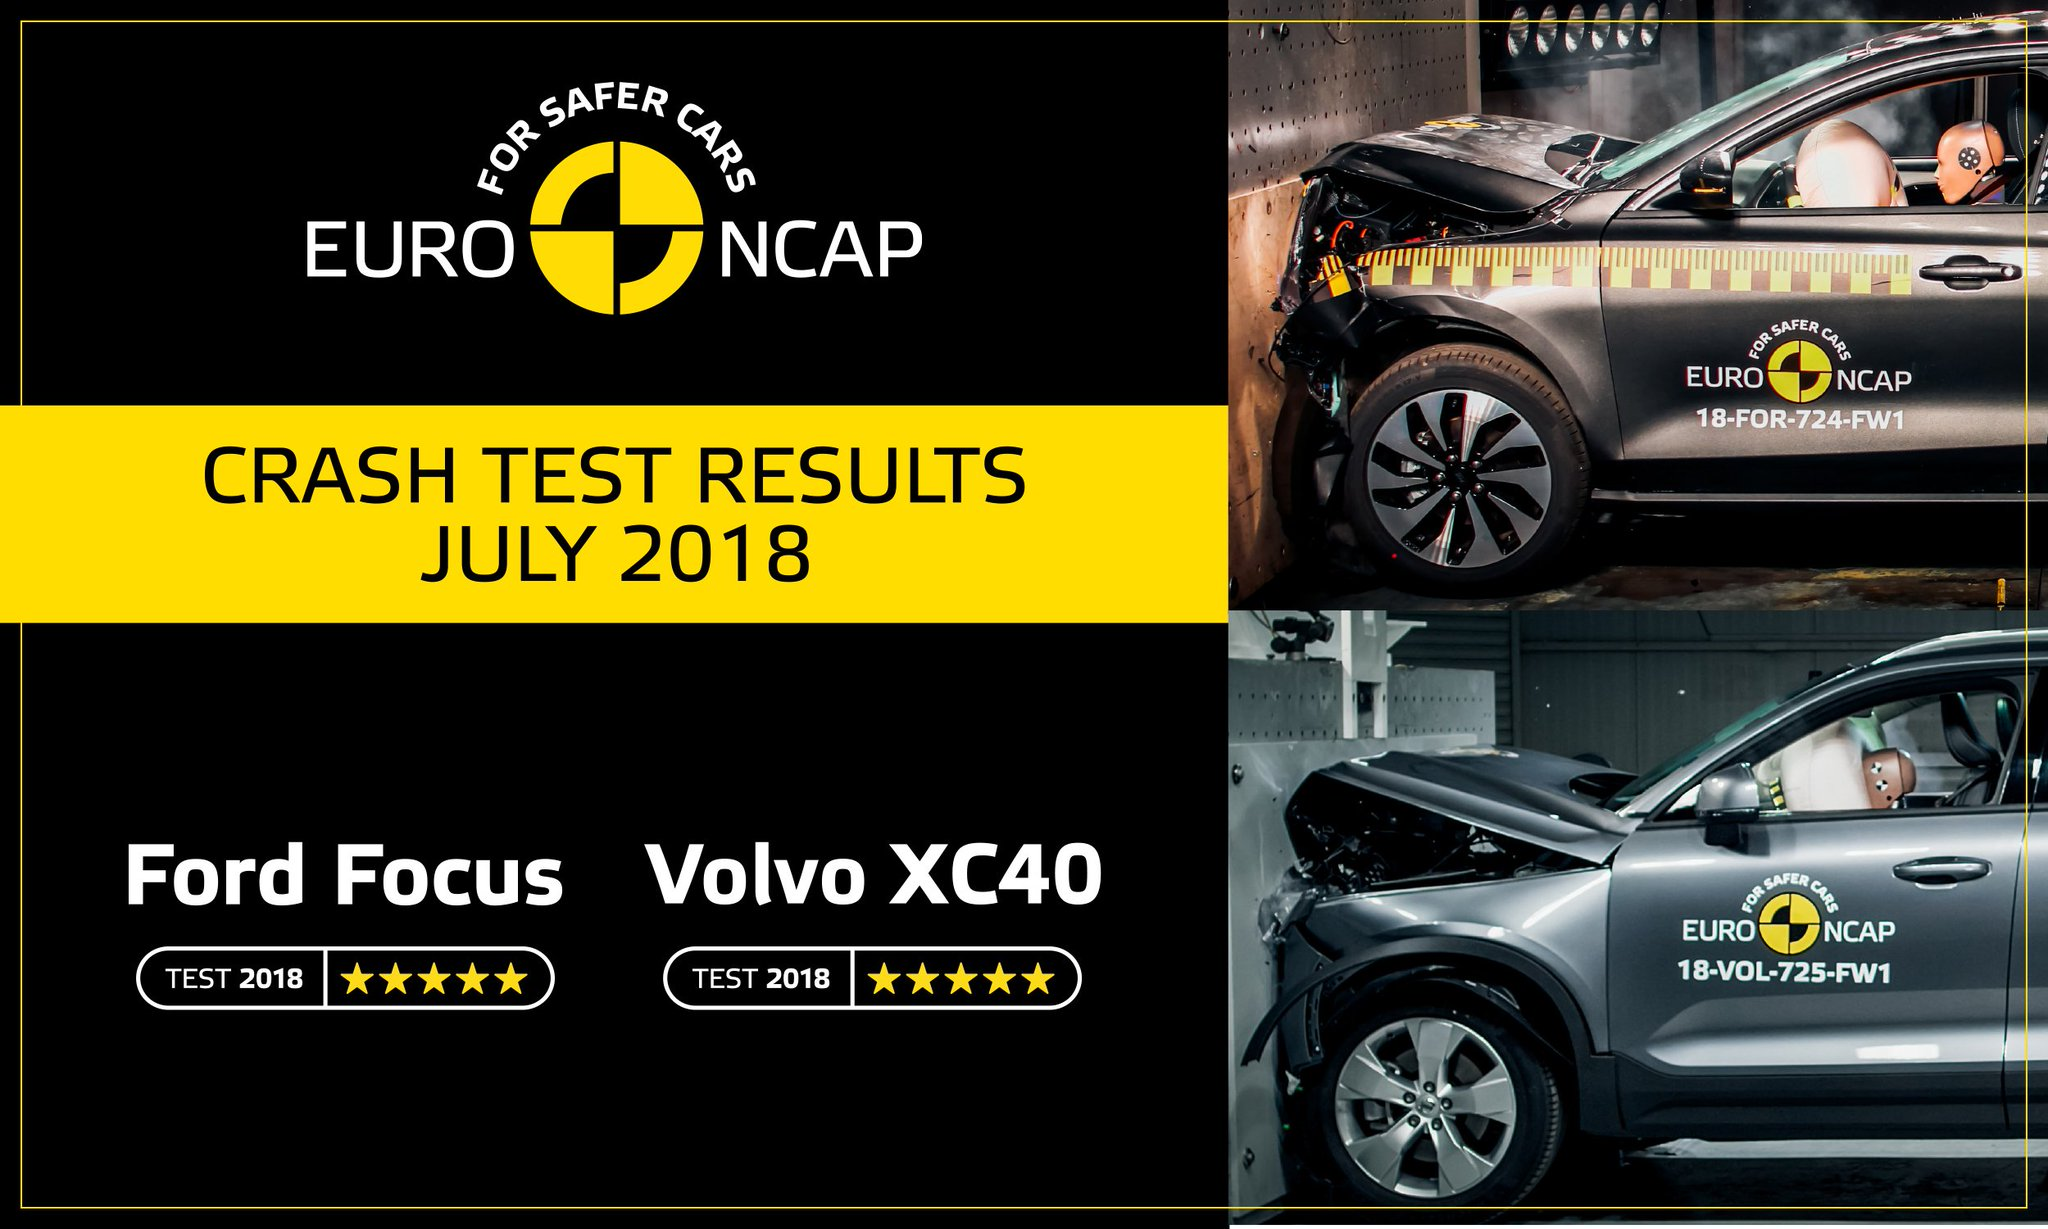 euro ncap on twitter today euroncap releases the safety ratings of two new cars both volvo s new small off roader the xc40 and the latest version of ford s small family car the focus euro ncap on twitter today euroncap